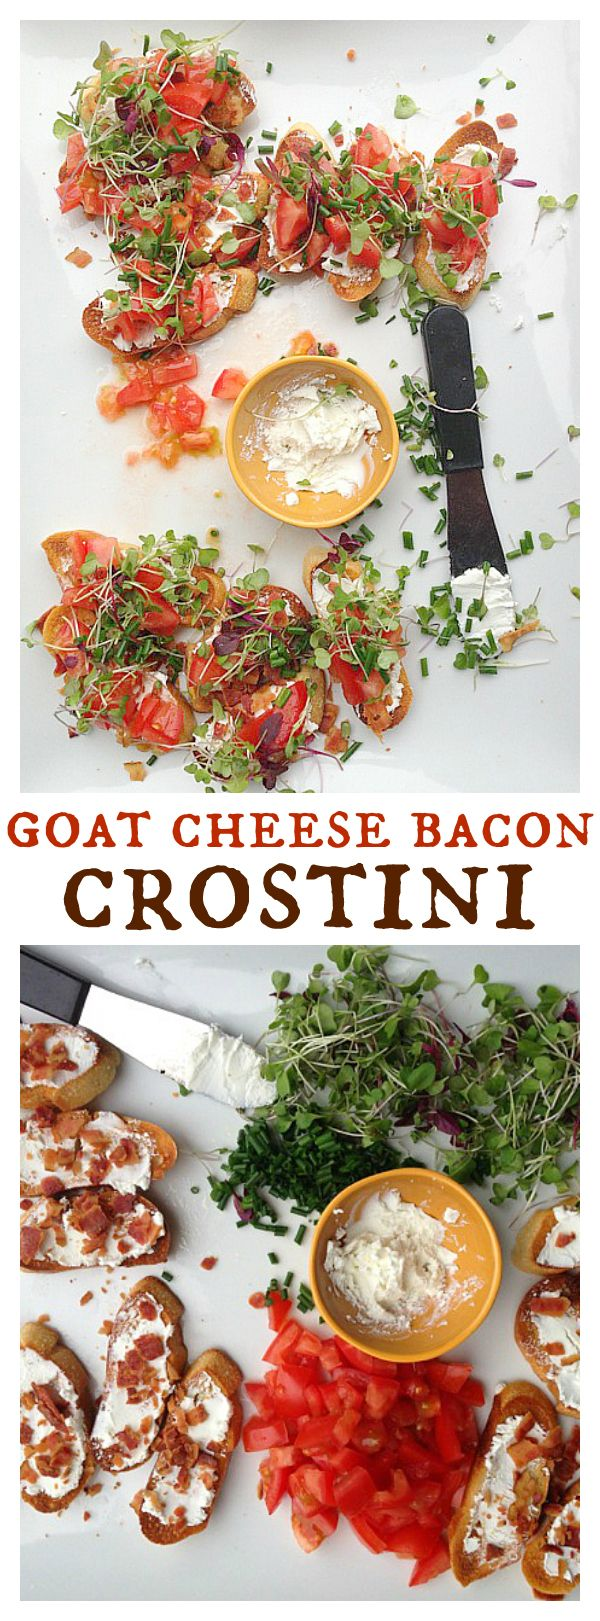 Goat Cheese Bacon Crostini and Micro Greens